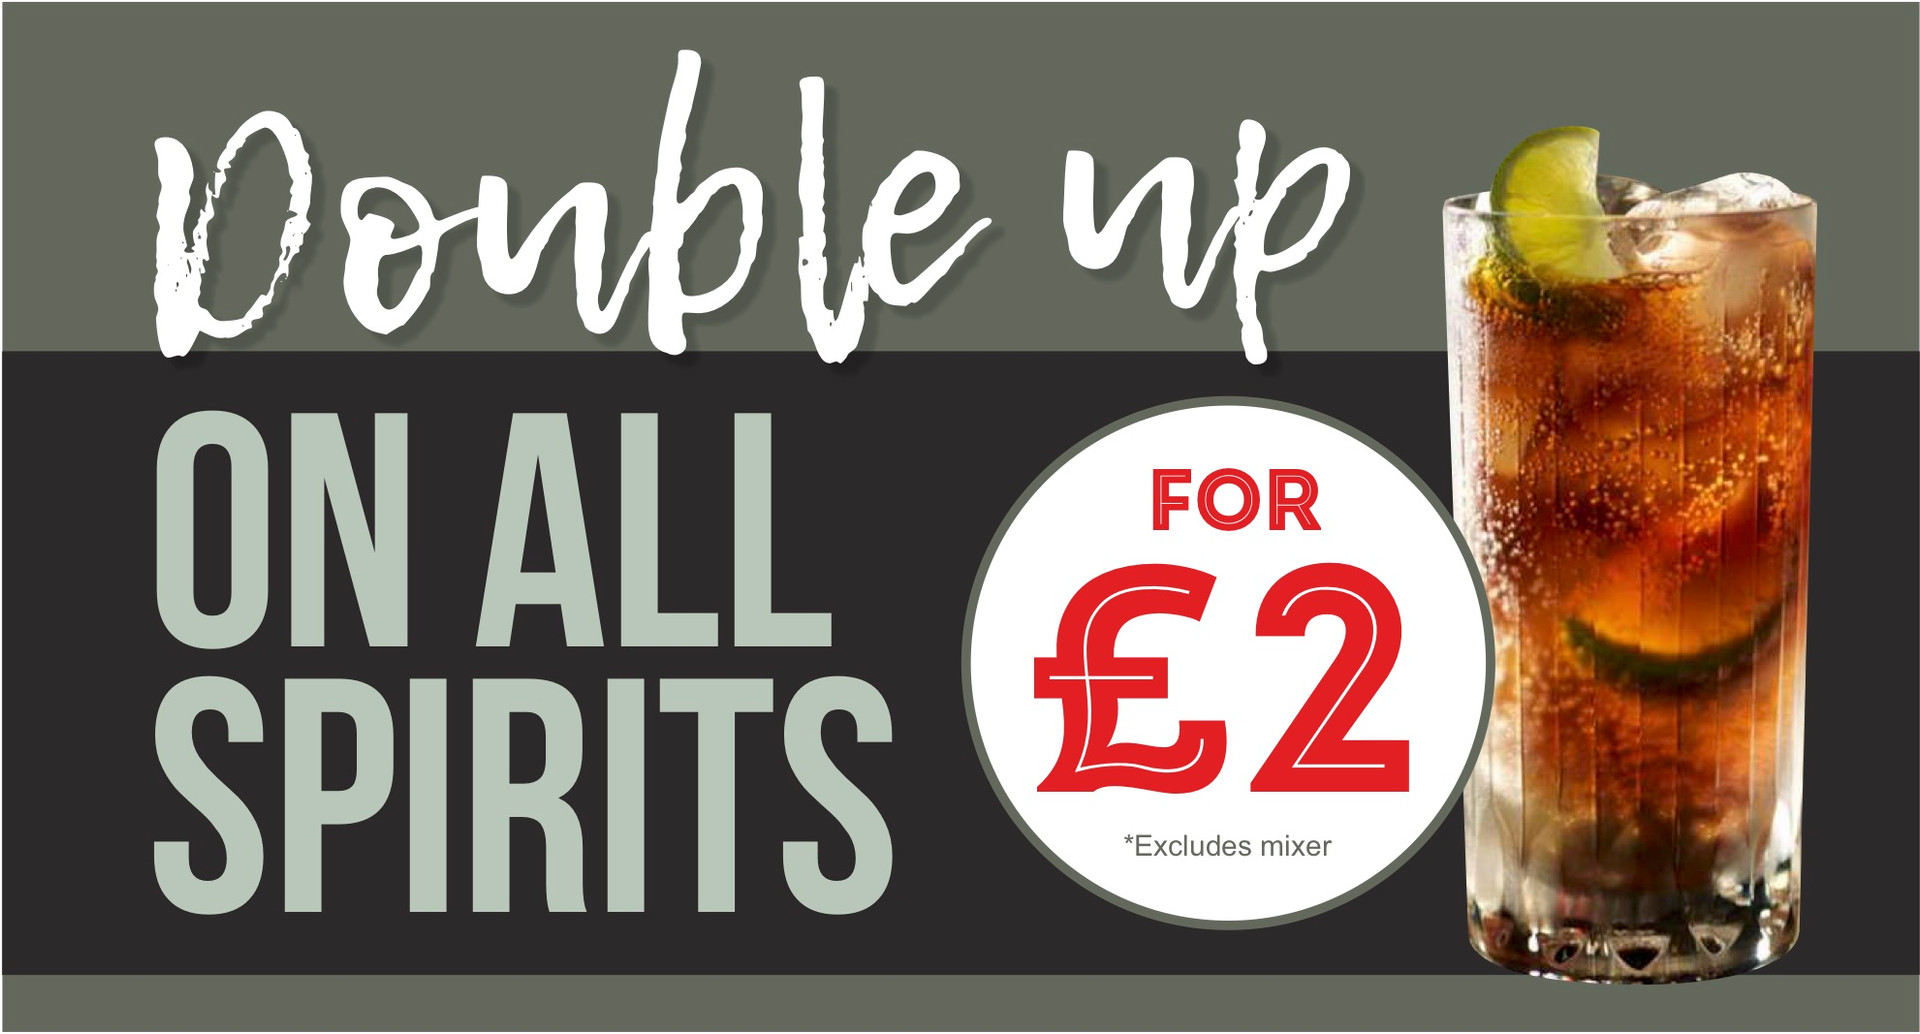 Double Up for £2 on spirits